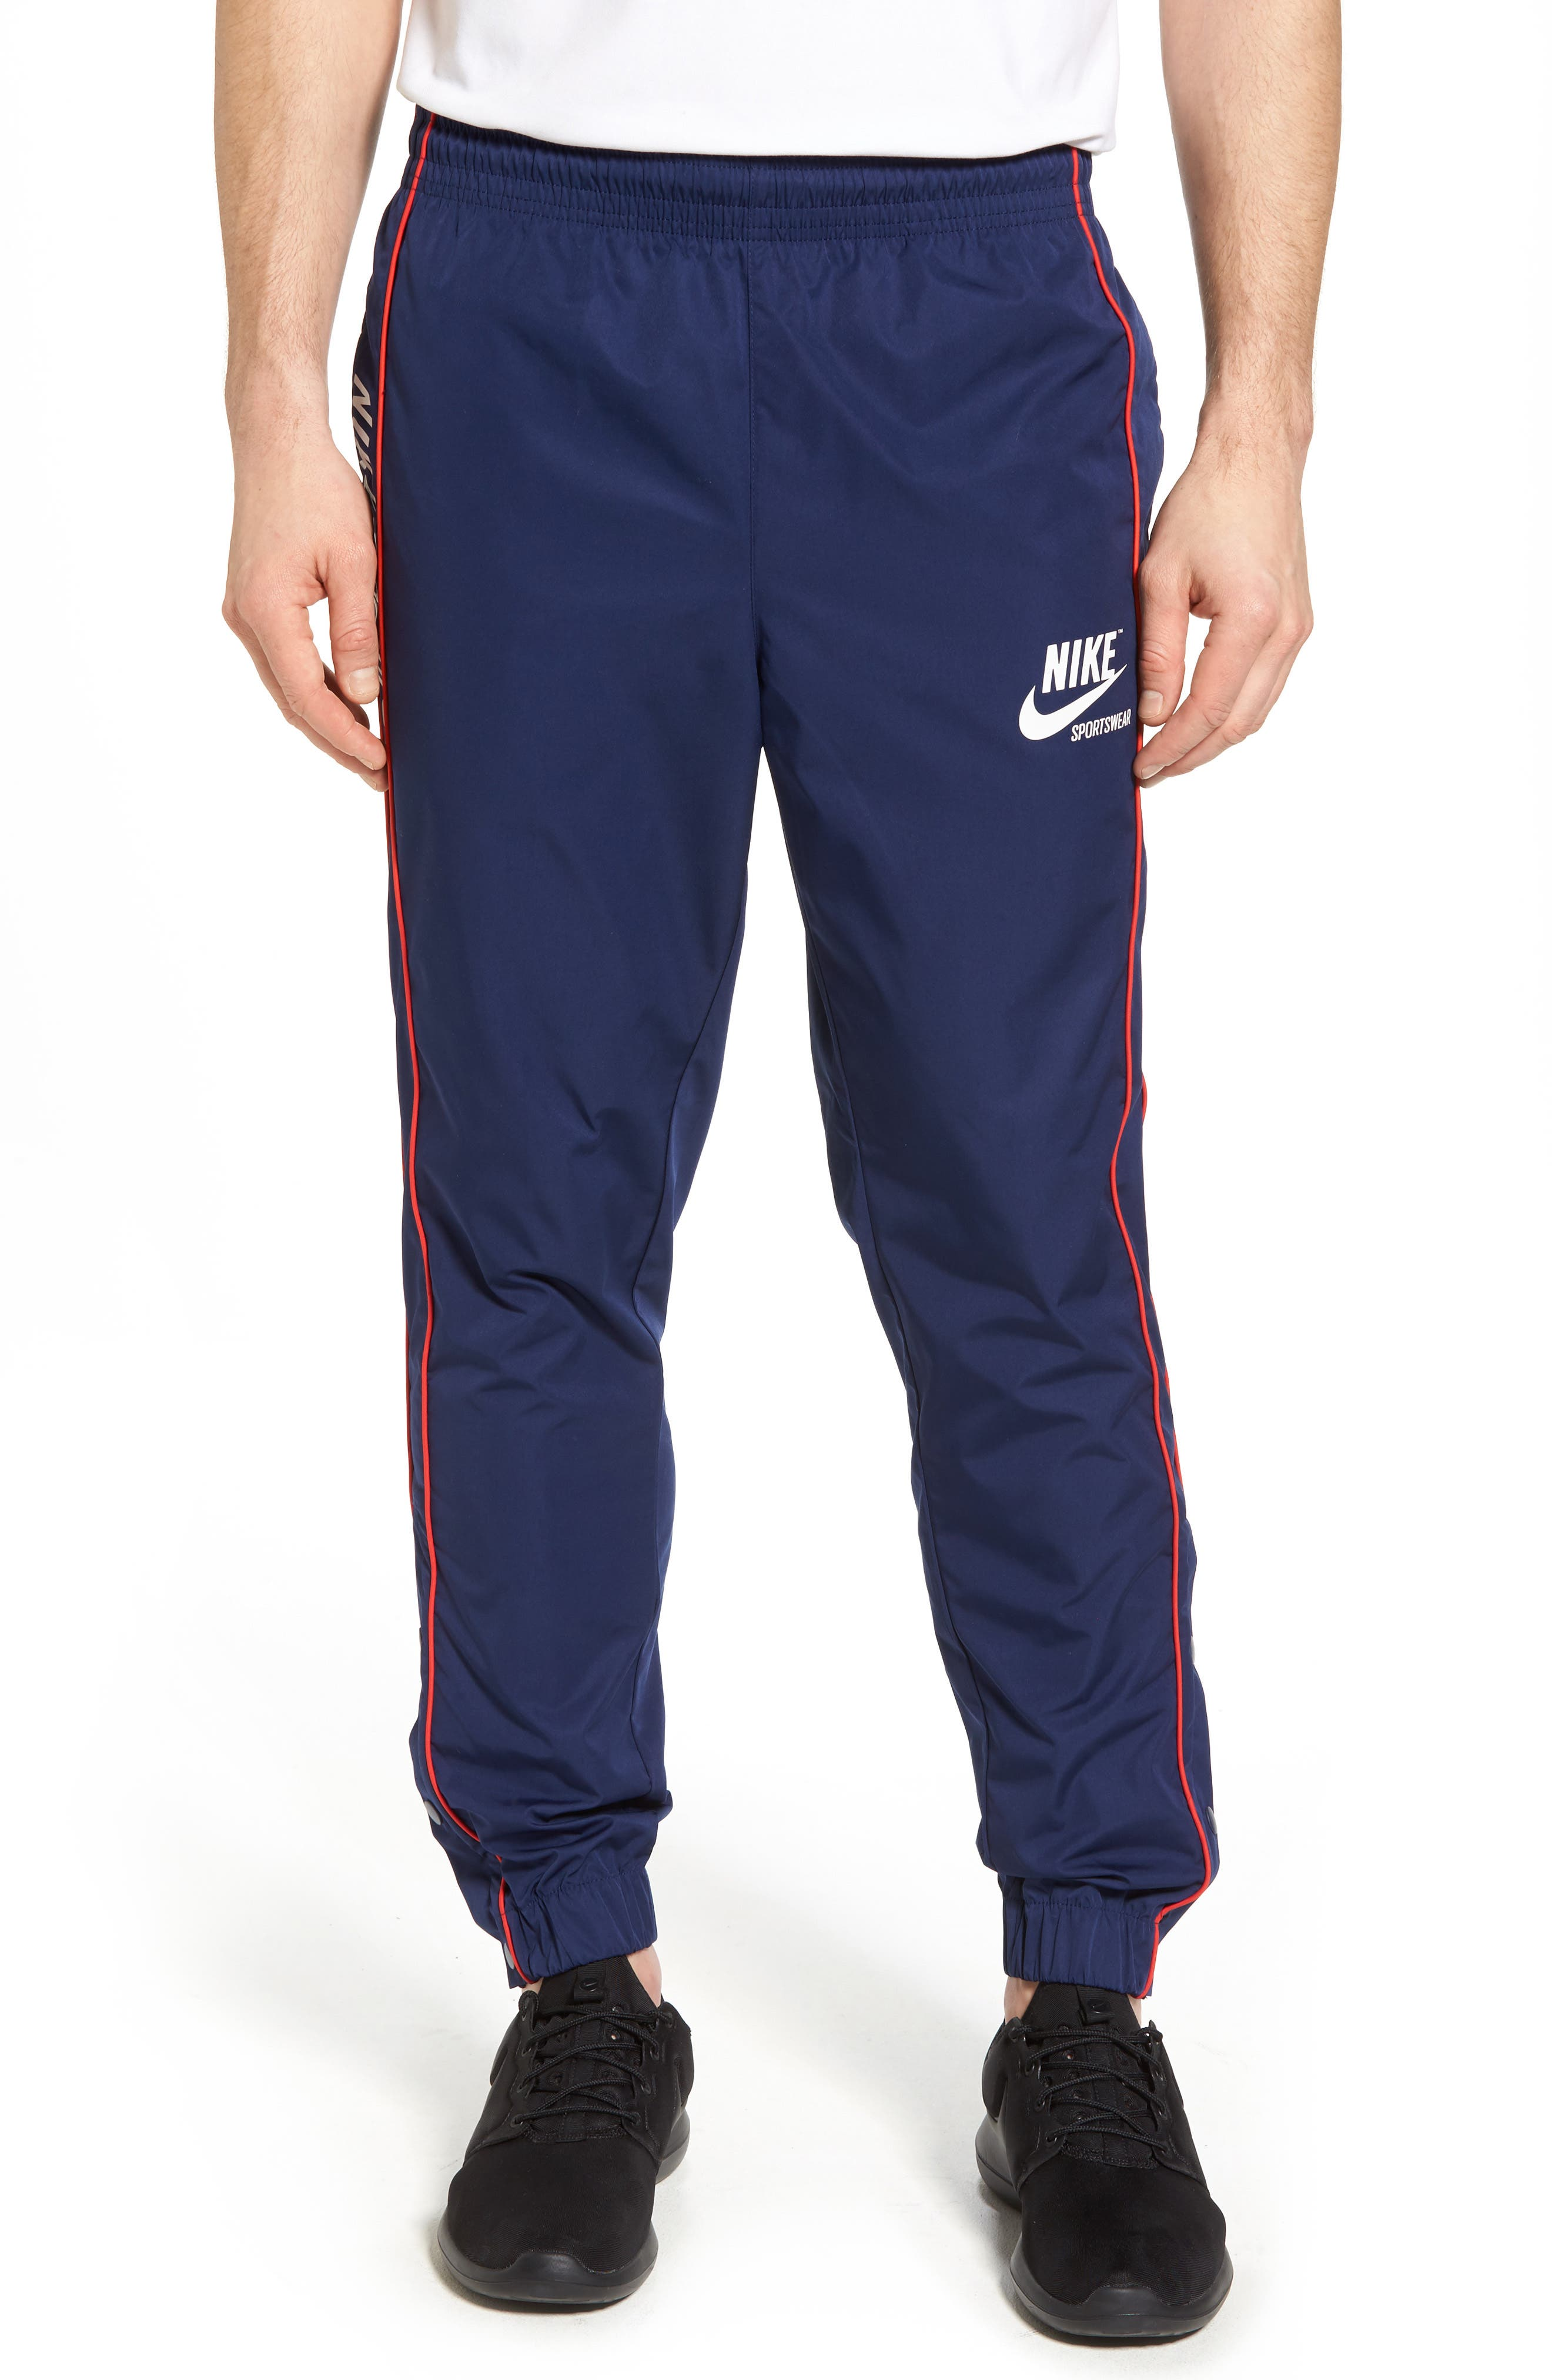 Buy Cheap Cheapest Price Outlet Hot Sale ankle zip sweatpants Represent Nicekicks Cheap Online Online Shop FiiG5P